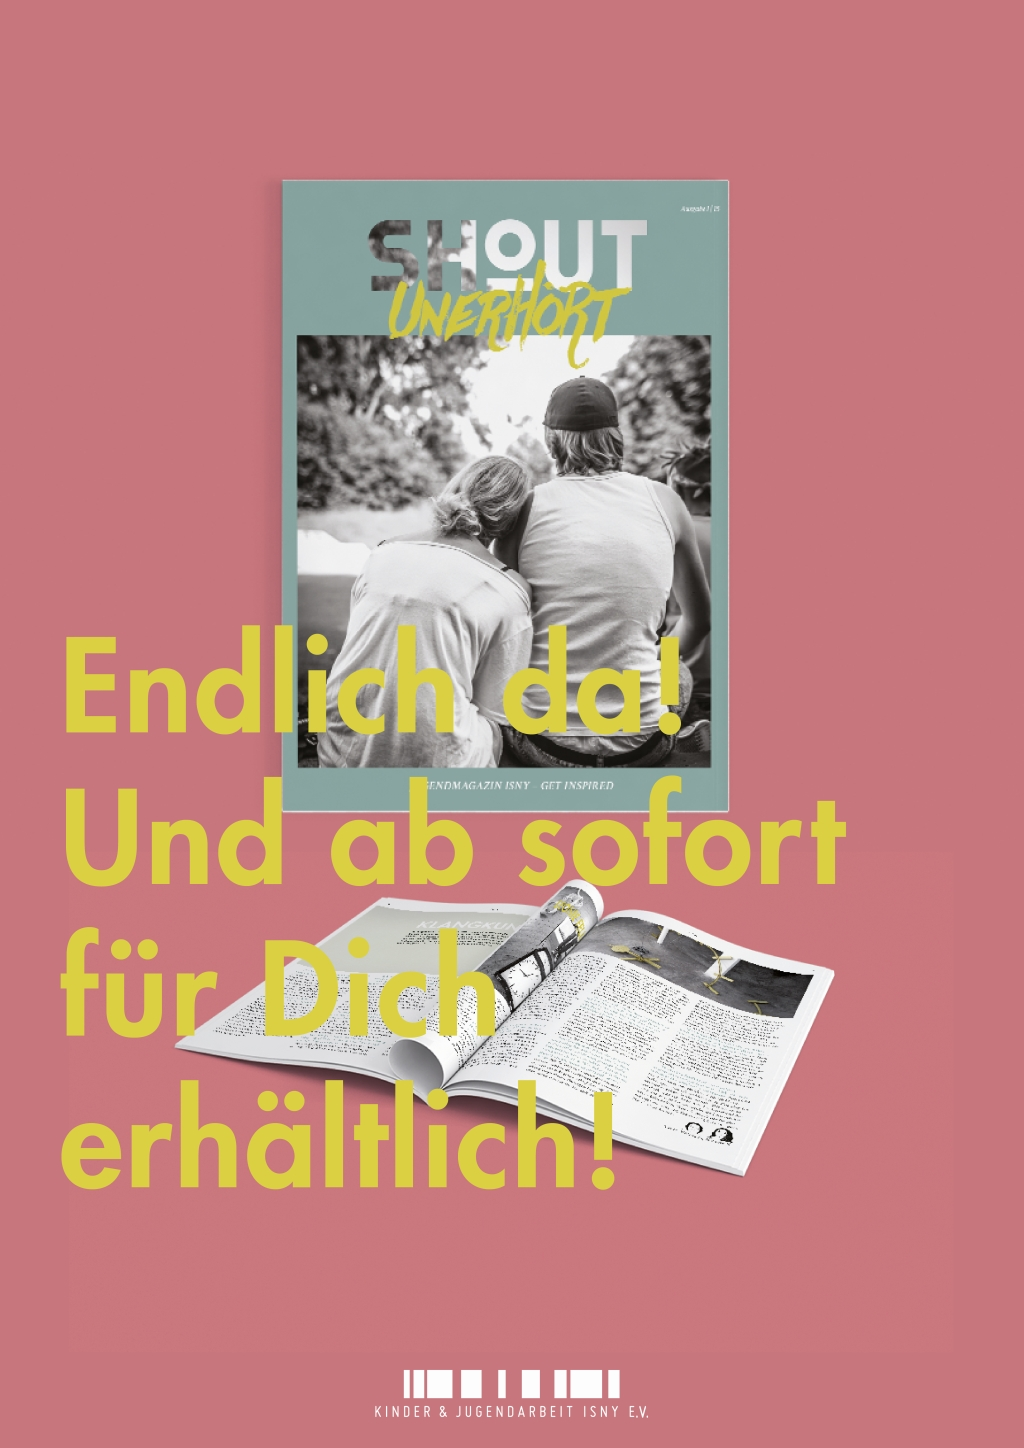 shout_plakat_final web